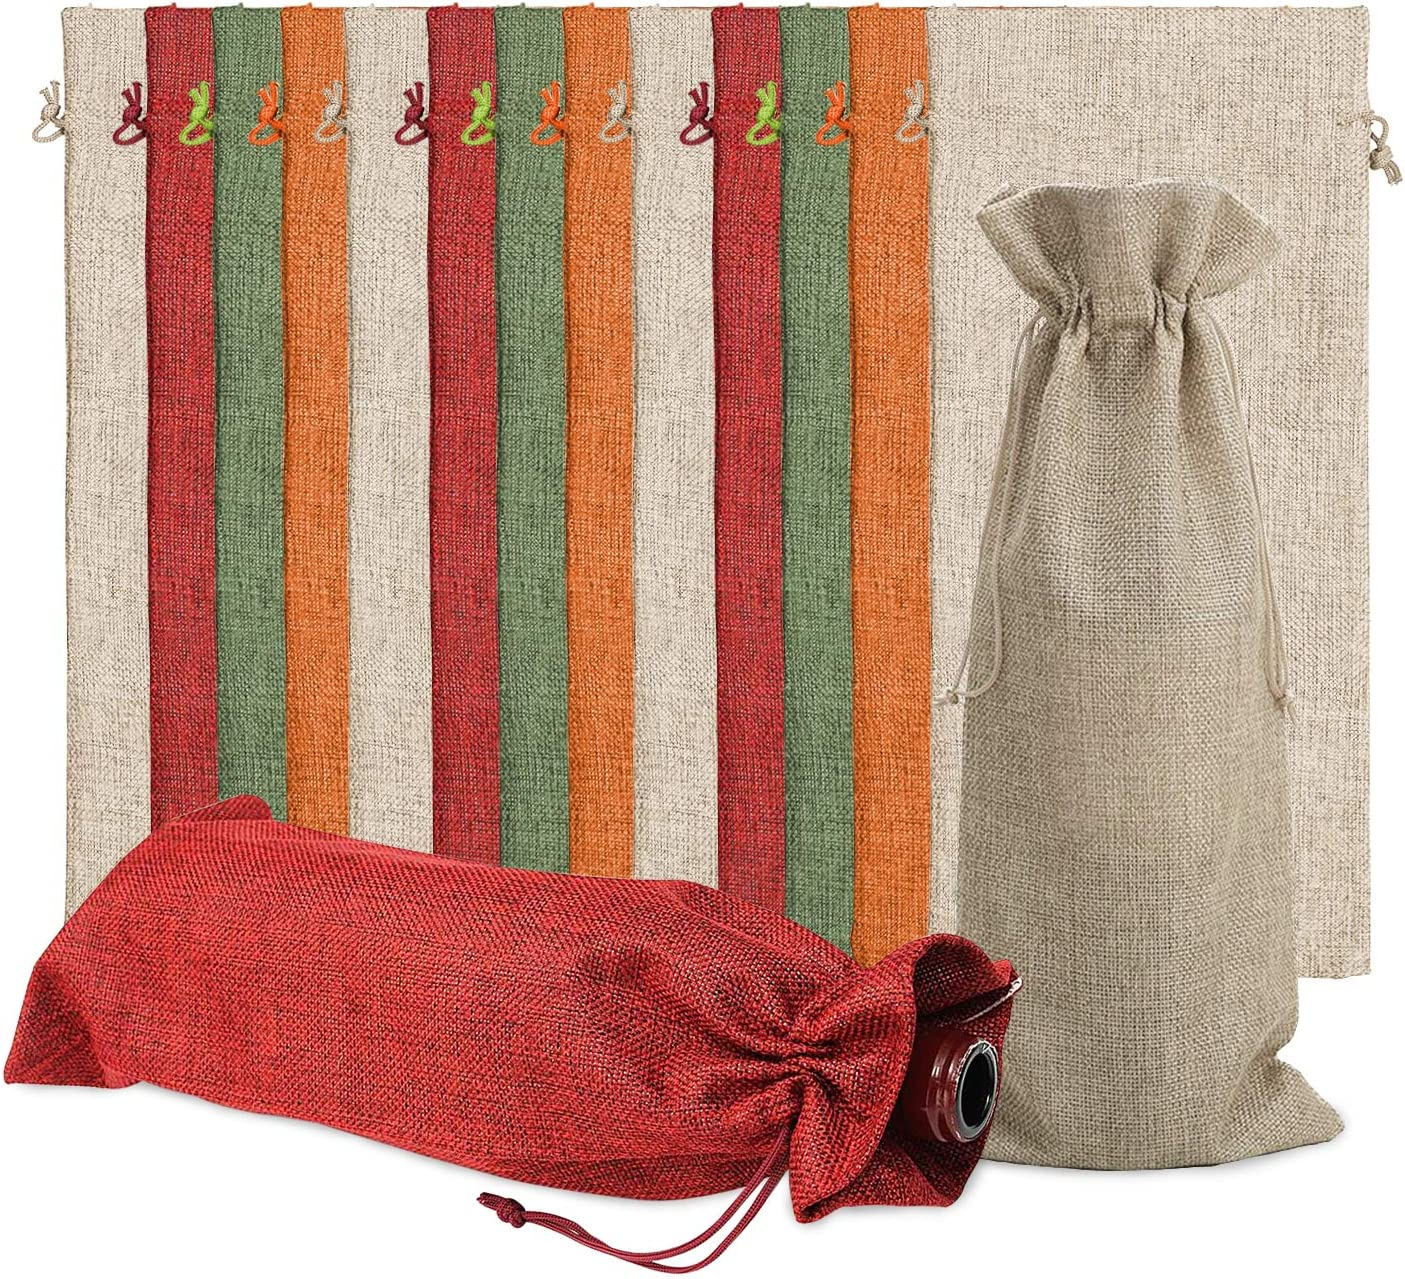 Burlap Wine Bags Wine Gift Bags,15 Pieces Wine Bottle Bags with Drawstrings,Reusable Wine Bottle Covers for Christmas Decorations Christmas Sweater Party Decorations